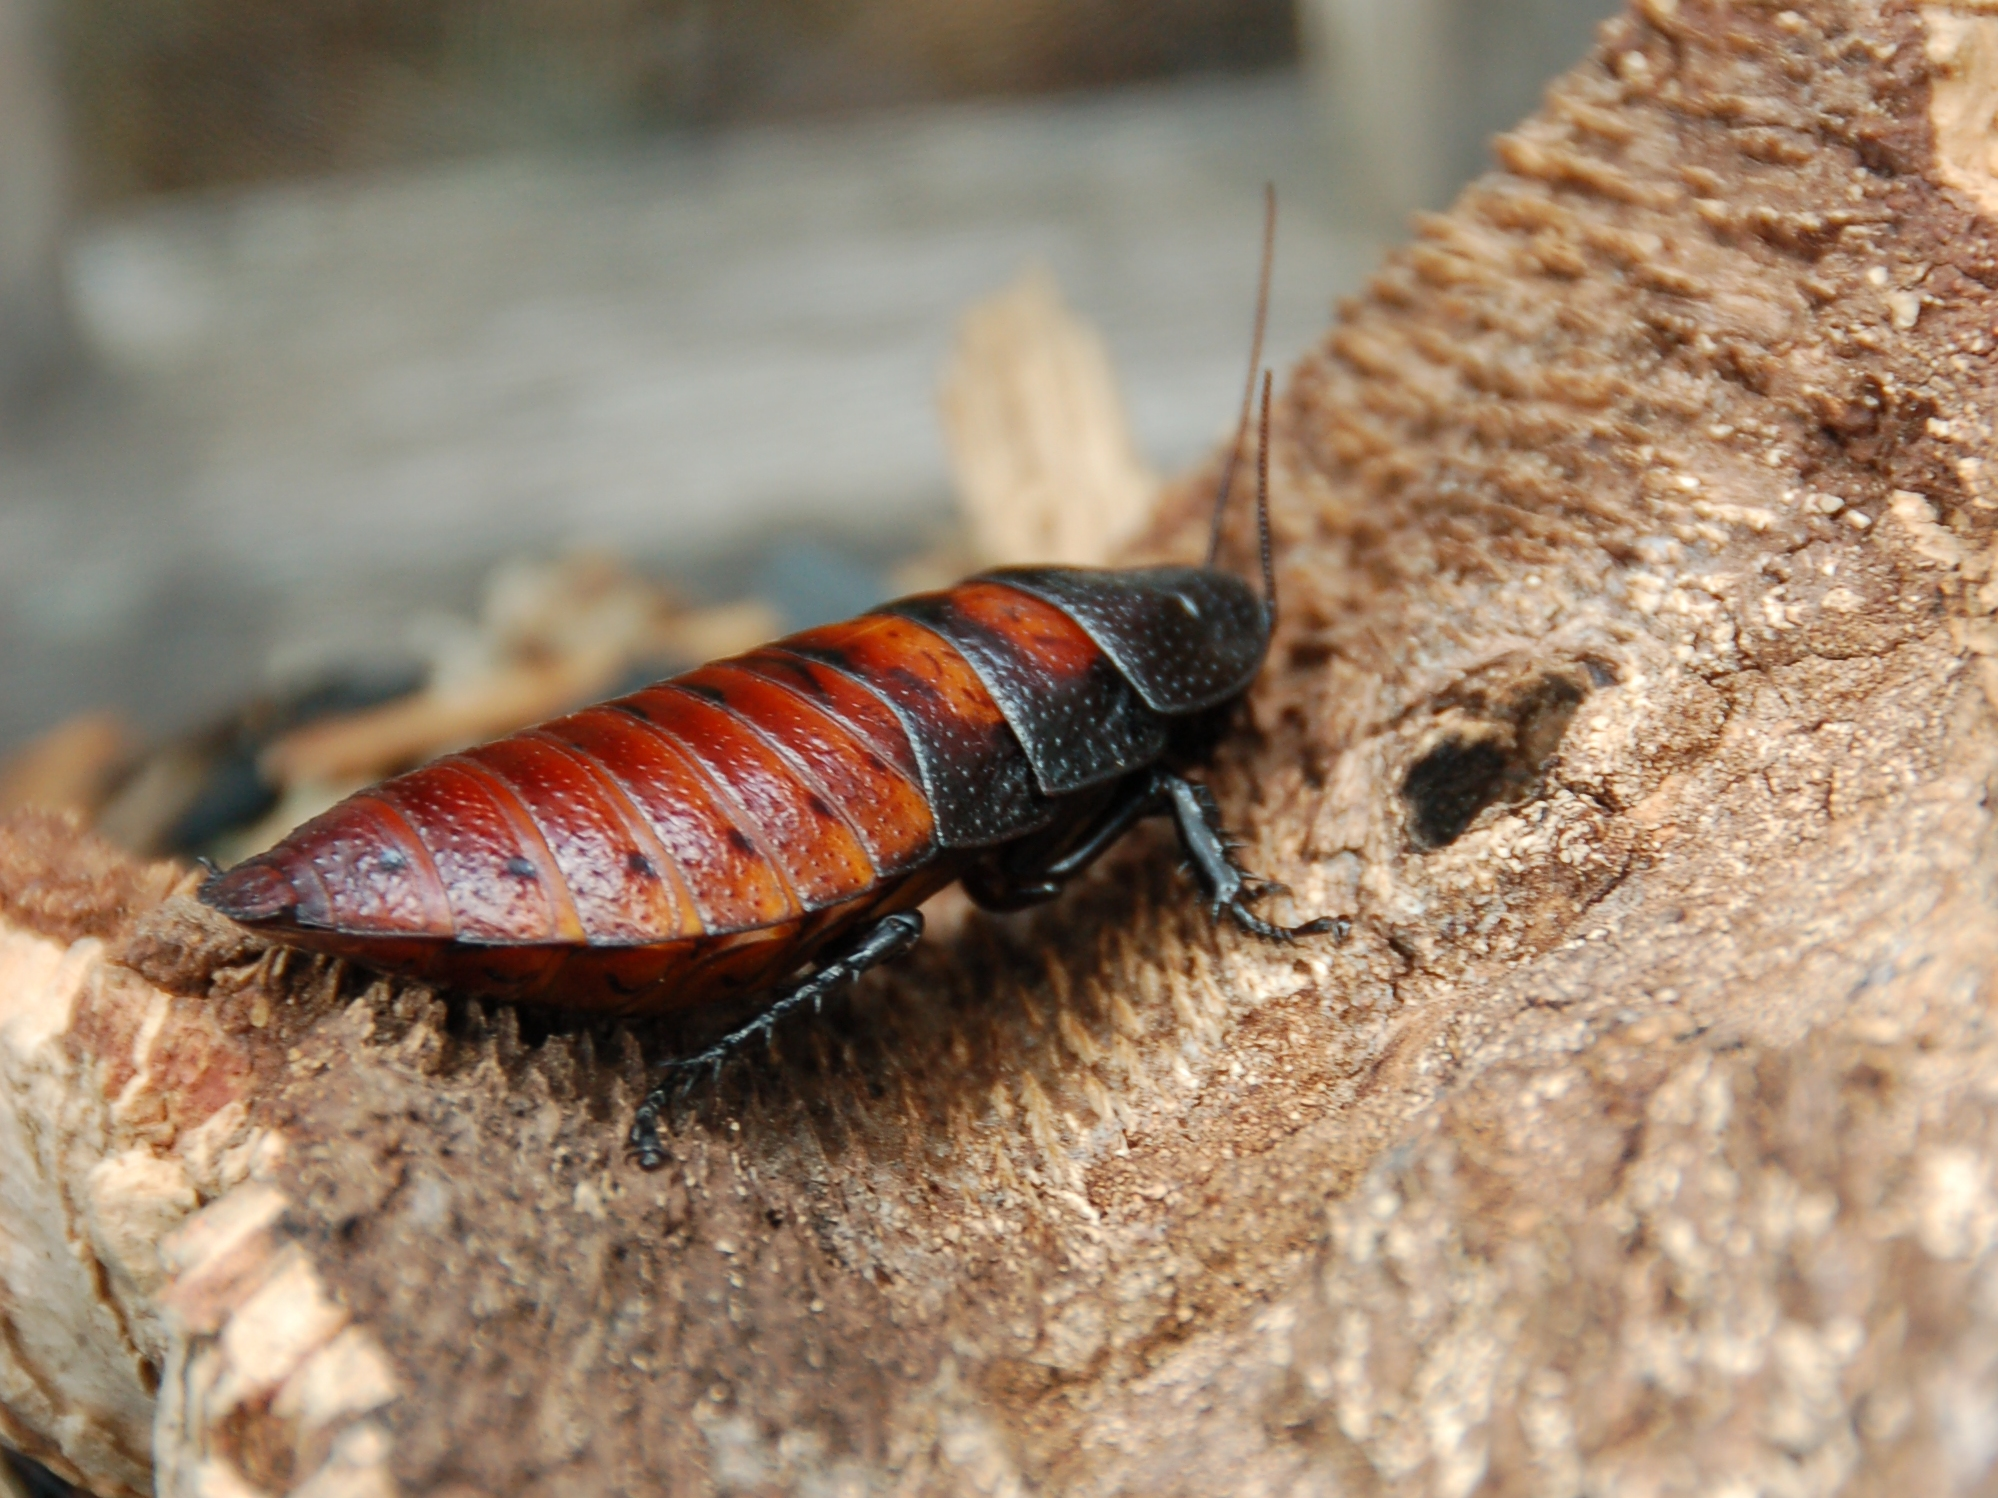 Female_Madagascar_hissing_cockroach.JPG